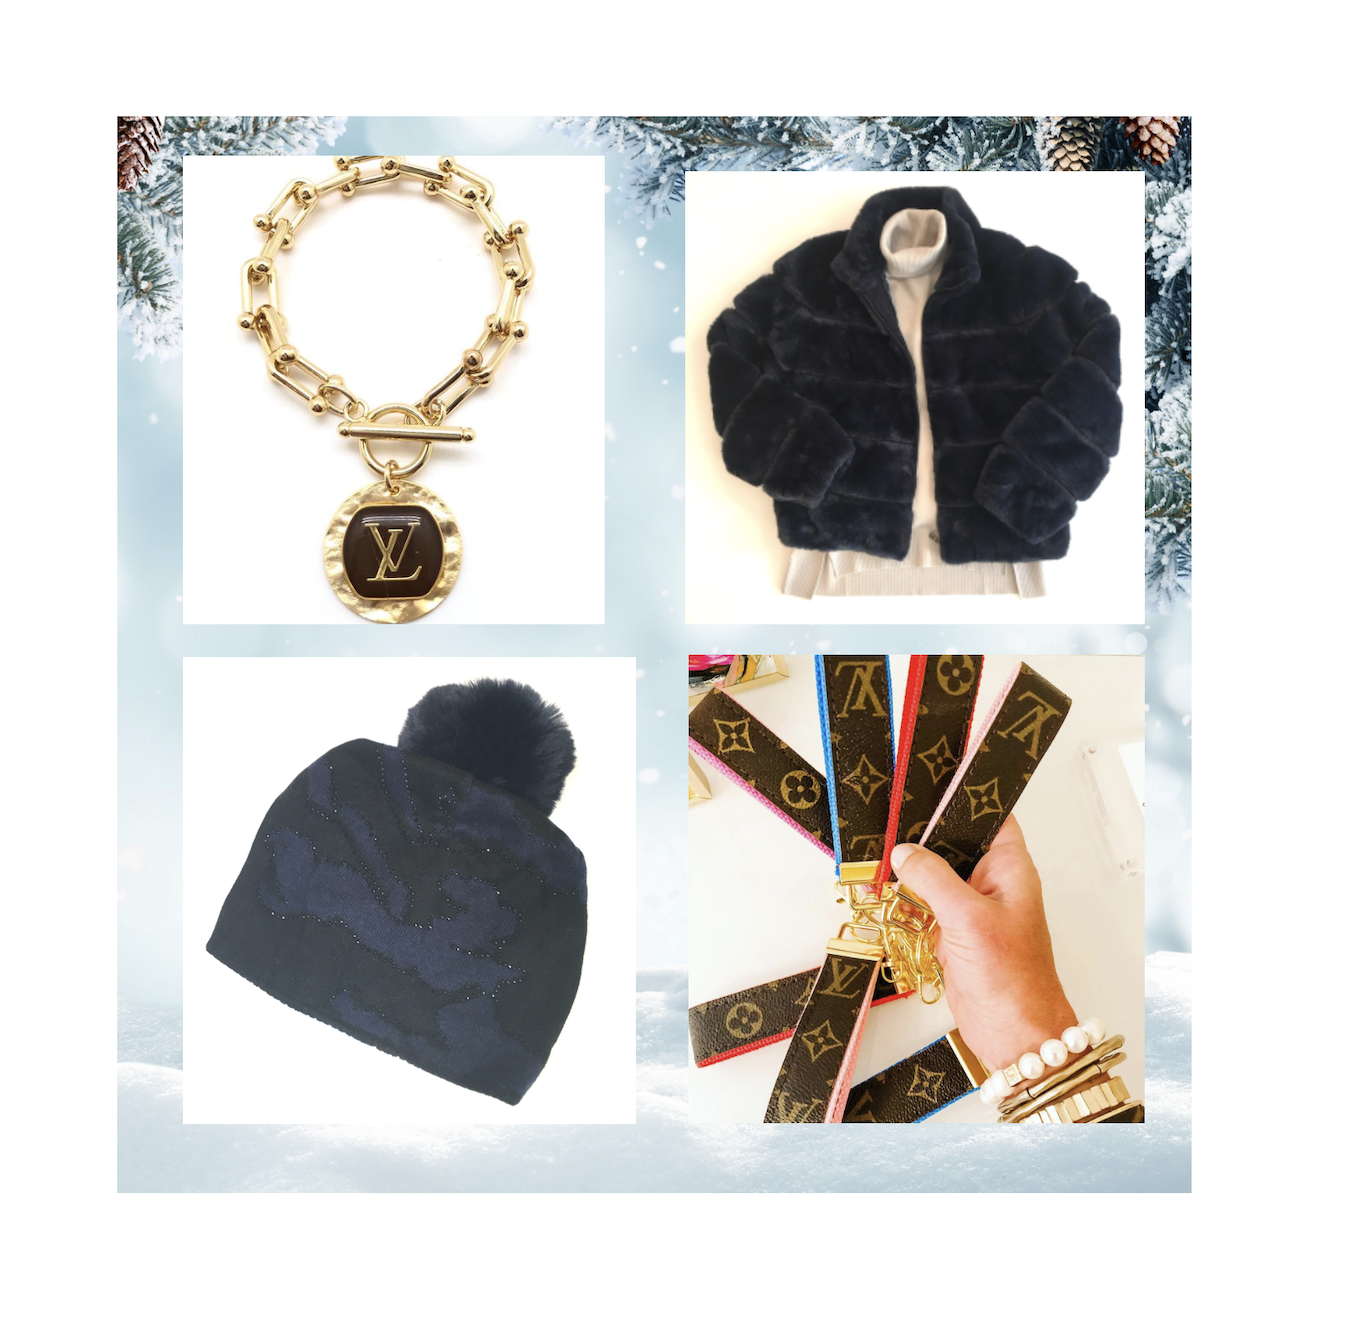 Lucy's Looks Winter Outfits and Accessories